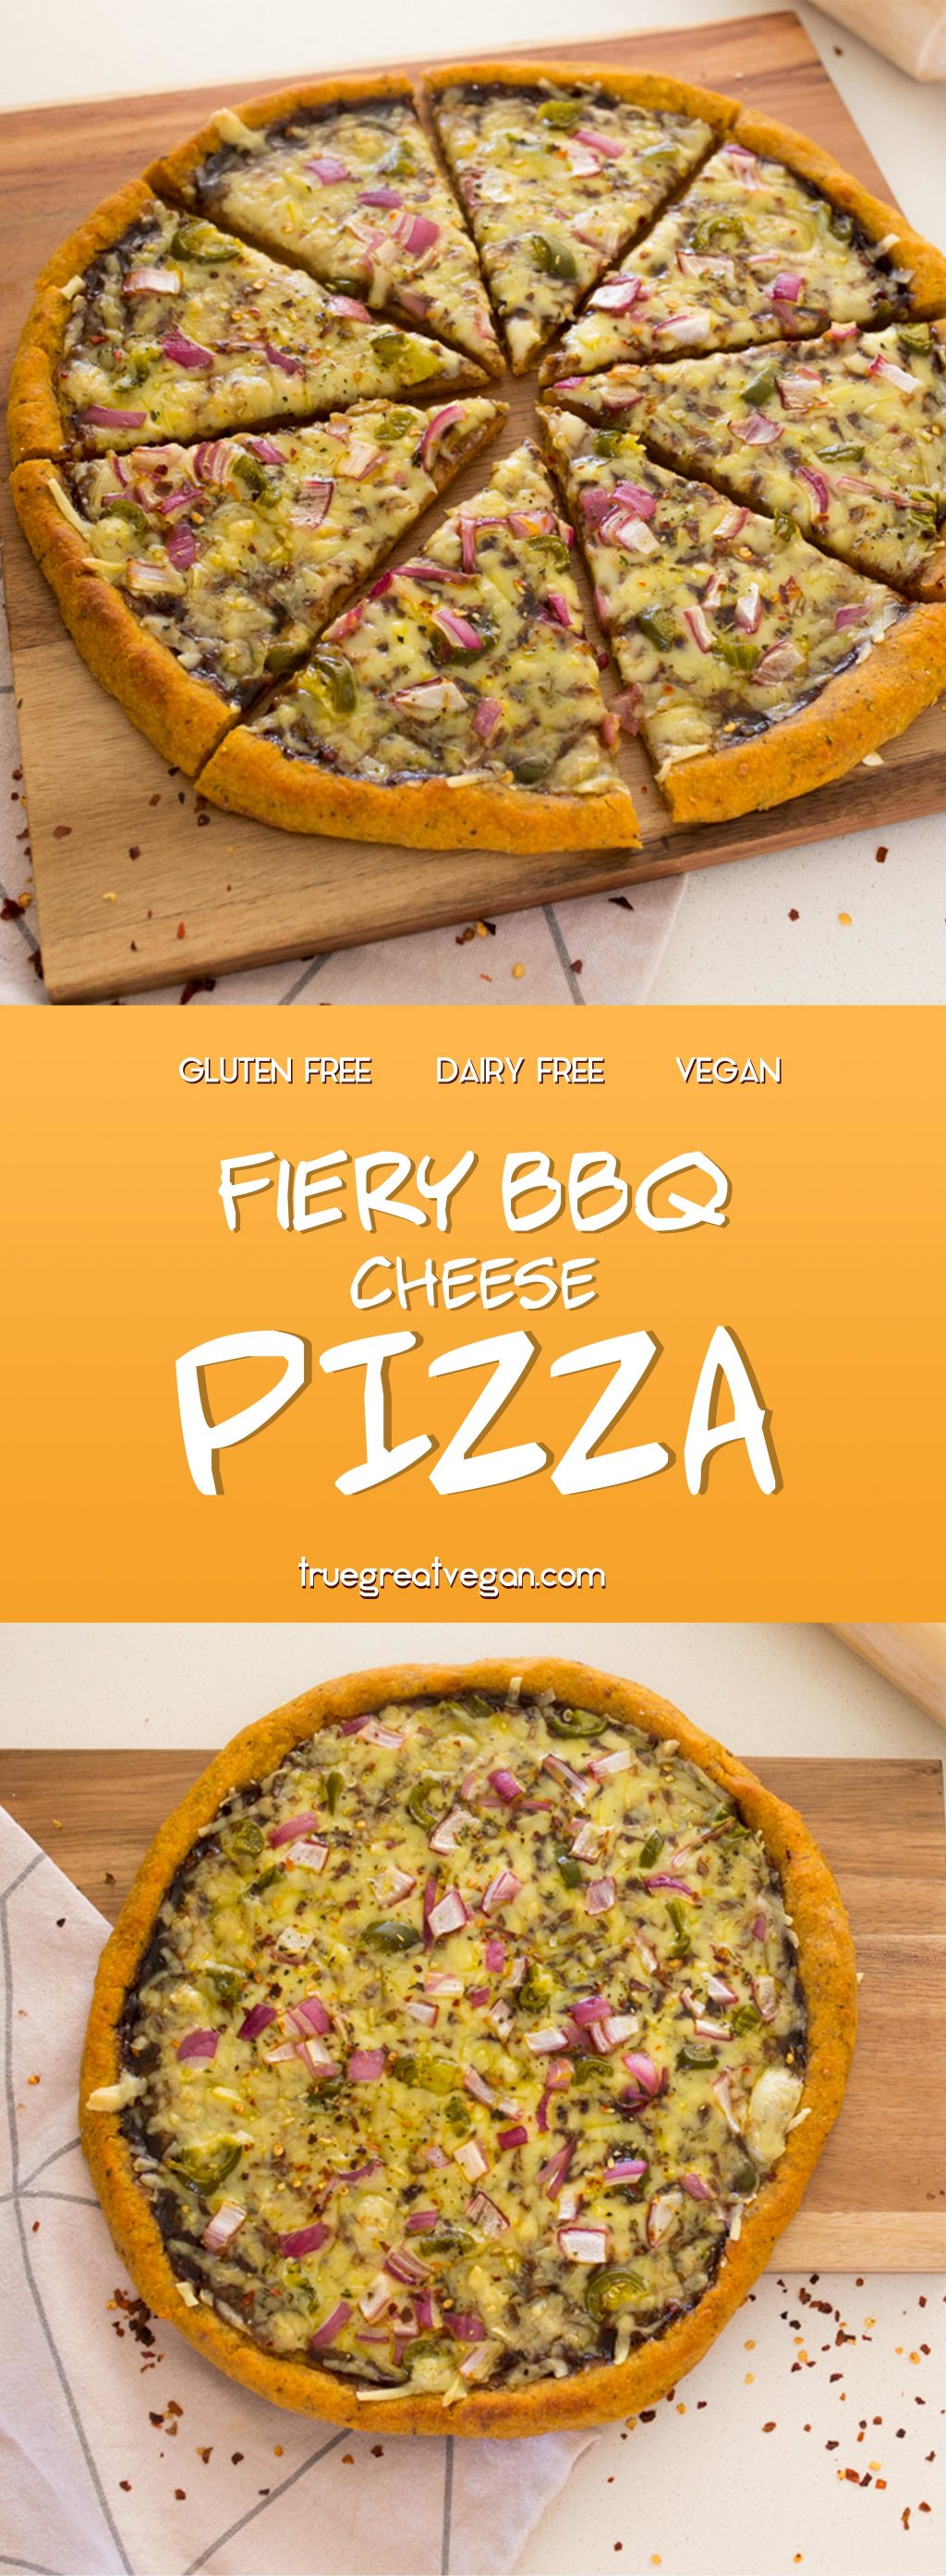 Pinterest - Fiery BBQ Cheese Pizza (Vegan & Gluten-Free!)